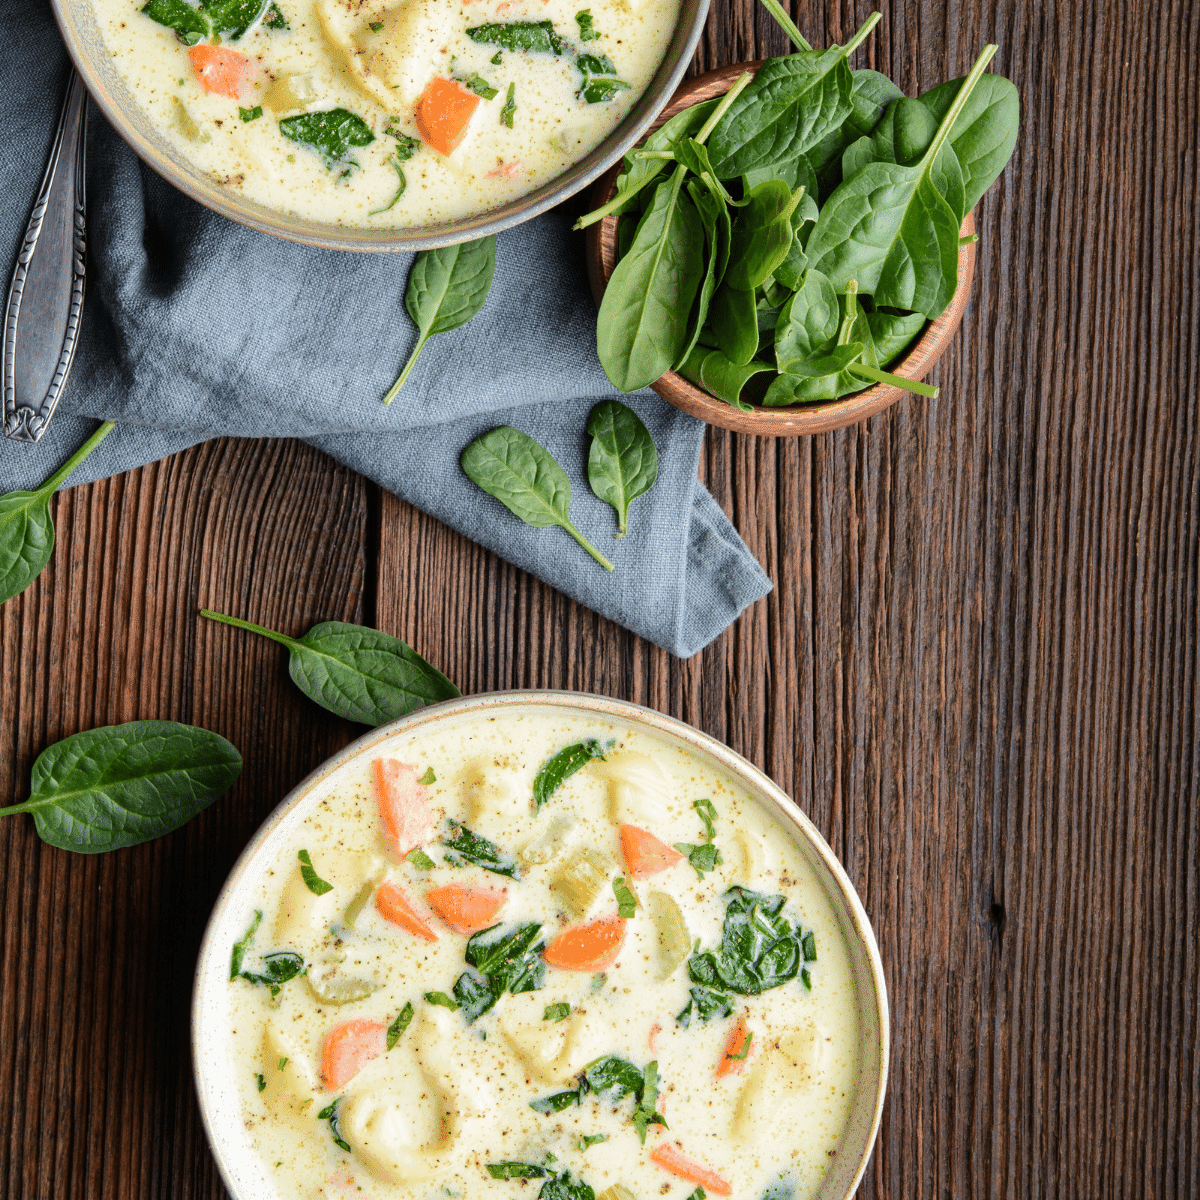 Two bowls of creamy chicken pasta soup with spinach and carrots, with a bowl of fresh spinach on the table with a blue napkin